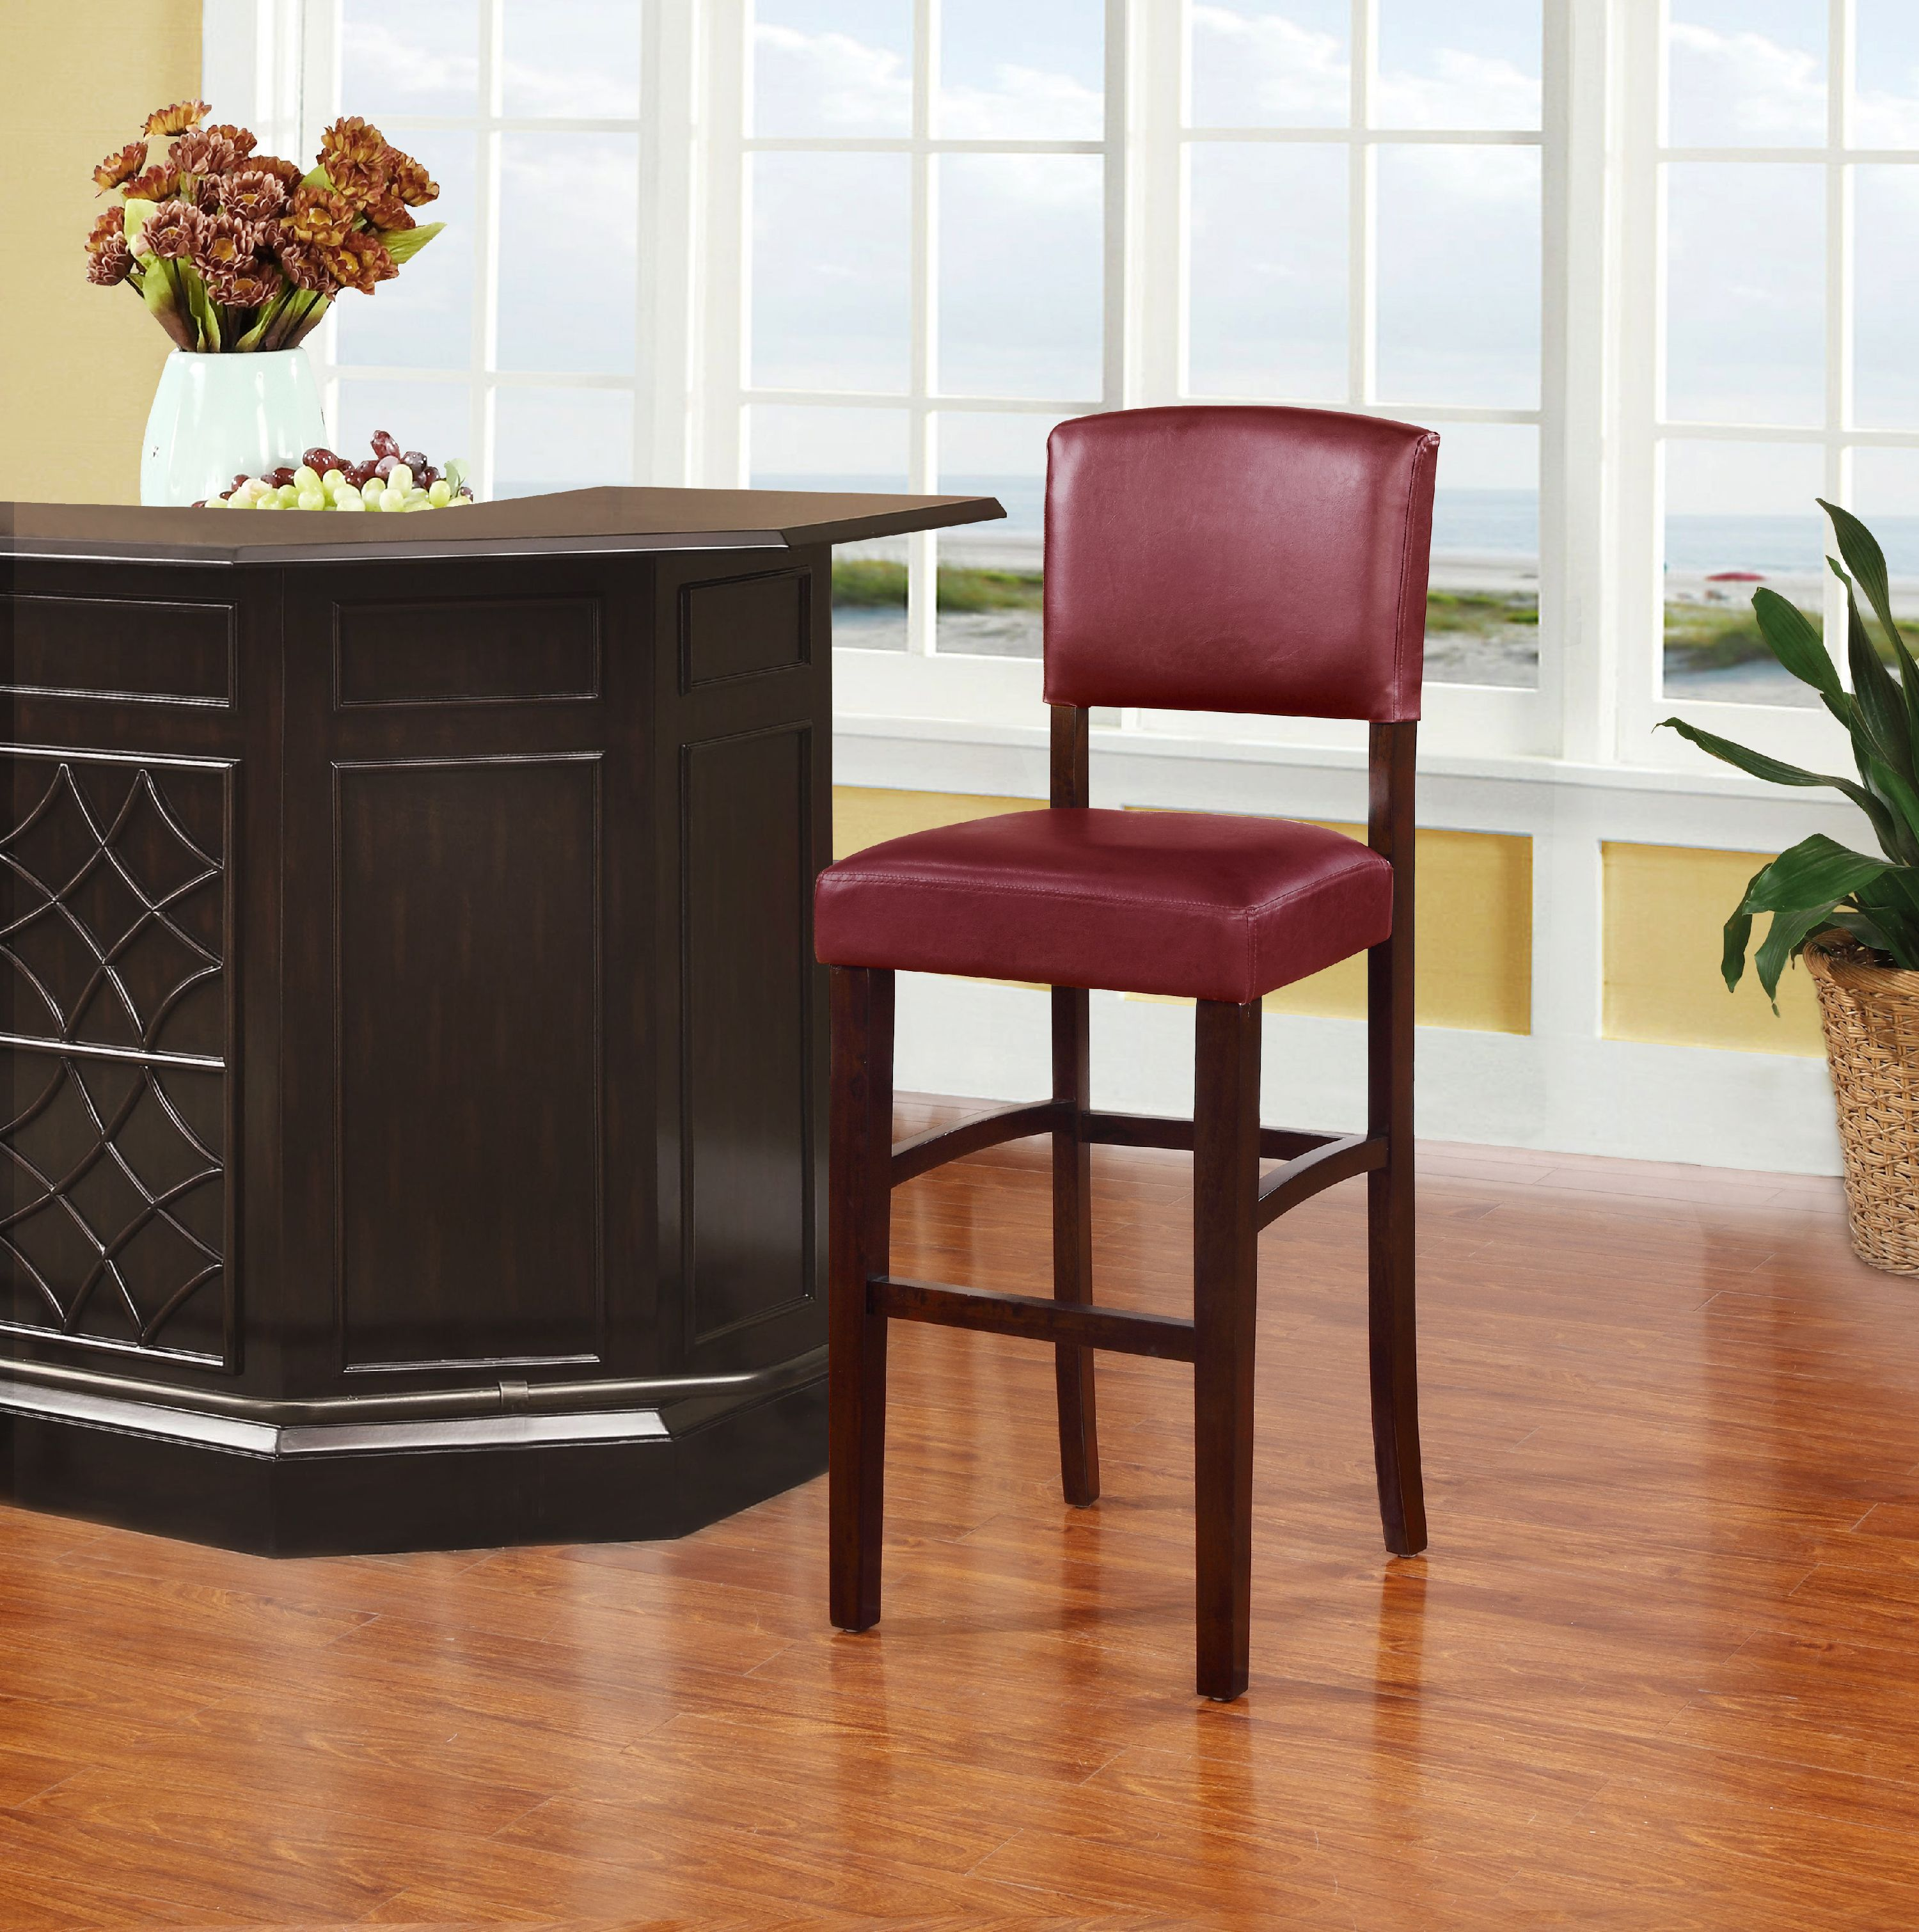 Linon Monaco Bar Stool Dark Red 30 Inch Seat Height